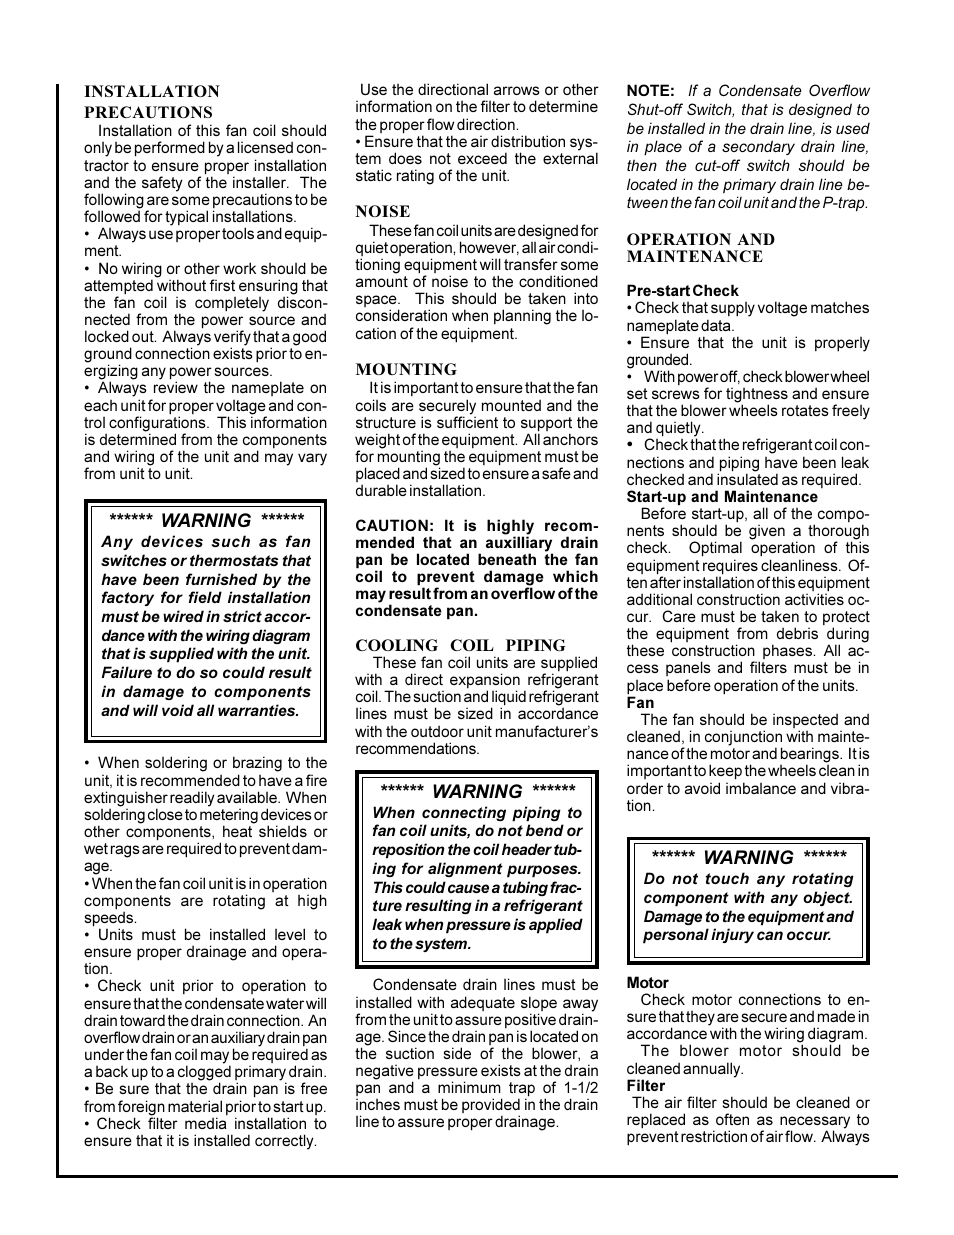 First Co Hbxx High Efficiency Ecm User Manual Page 2 3 Wiring Diagrams